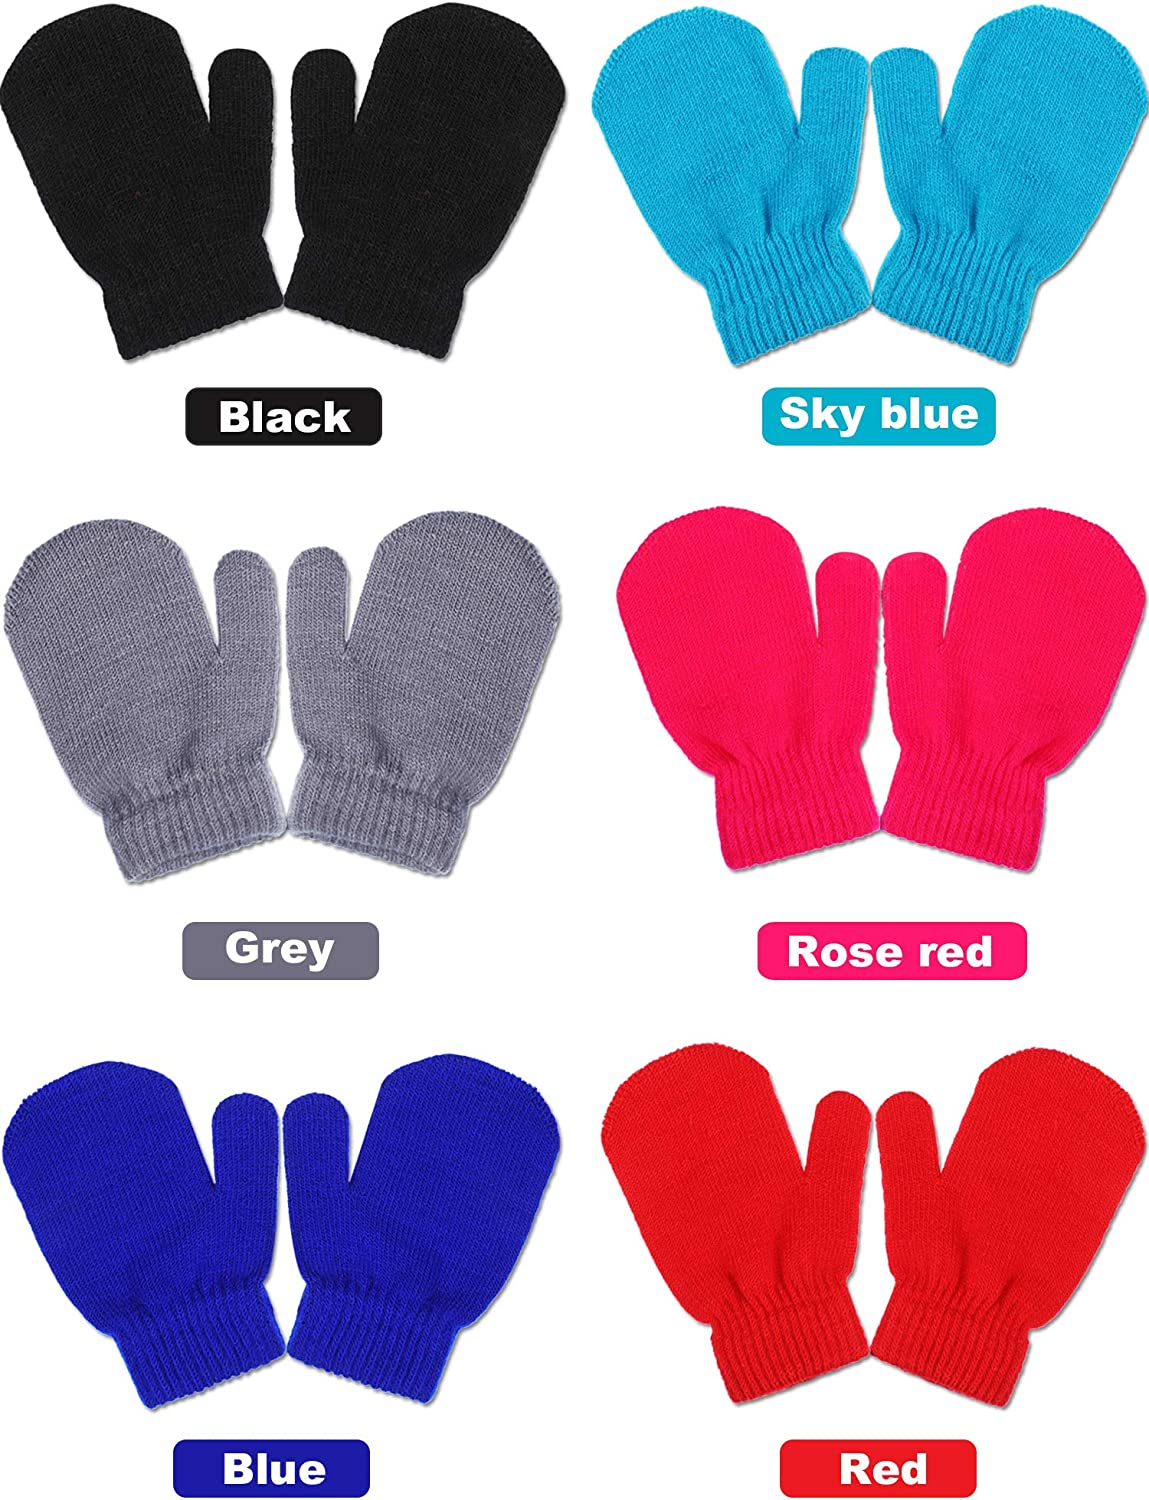 Sumind 12 Pairs Kids Knitted Mittens Winter Warm Stretch Gloves Infant Mitten Gloves for Boys Girls